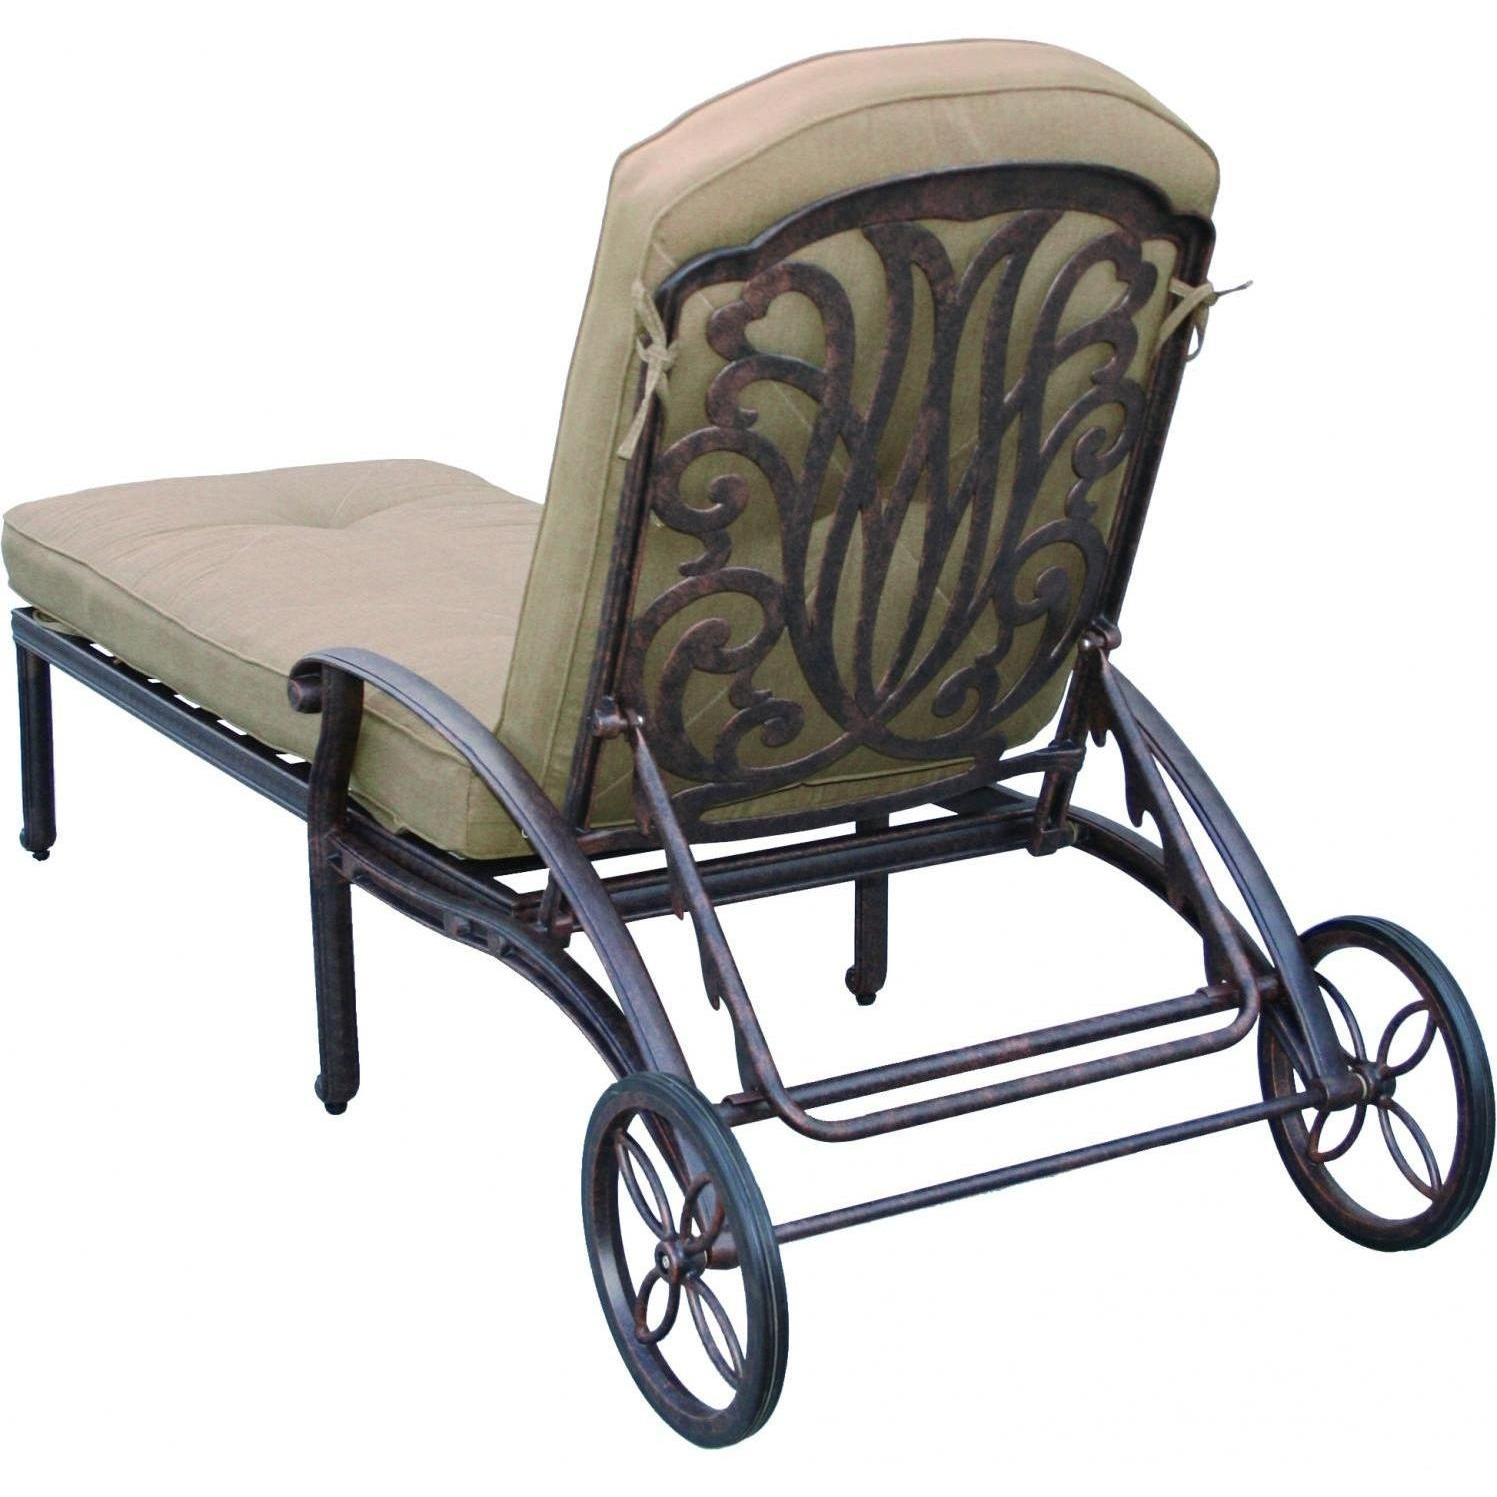 Picture of Darlee Elisabeth Cast Aluminum Patio Chaise Lounge - Antique Bronze